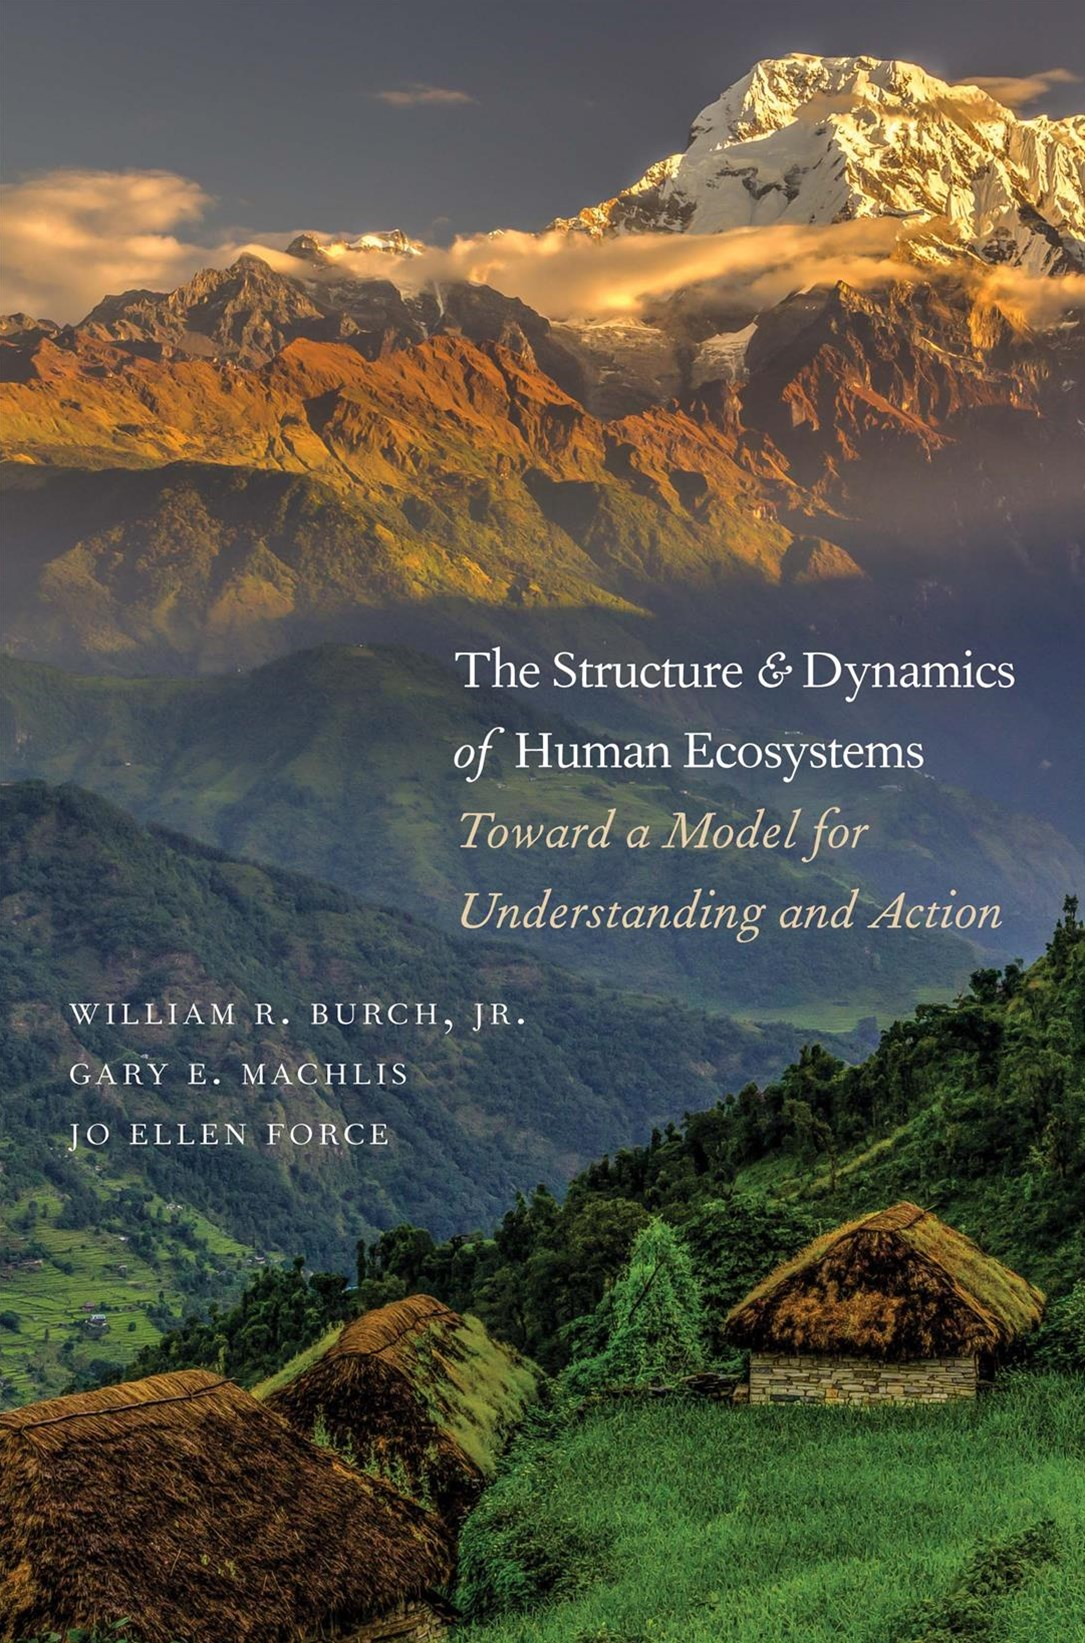 The Structure and Dynamics of Human Ecosystems: Toward a Model for Understanding and Action